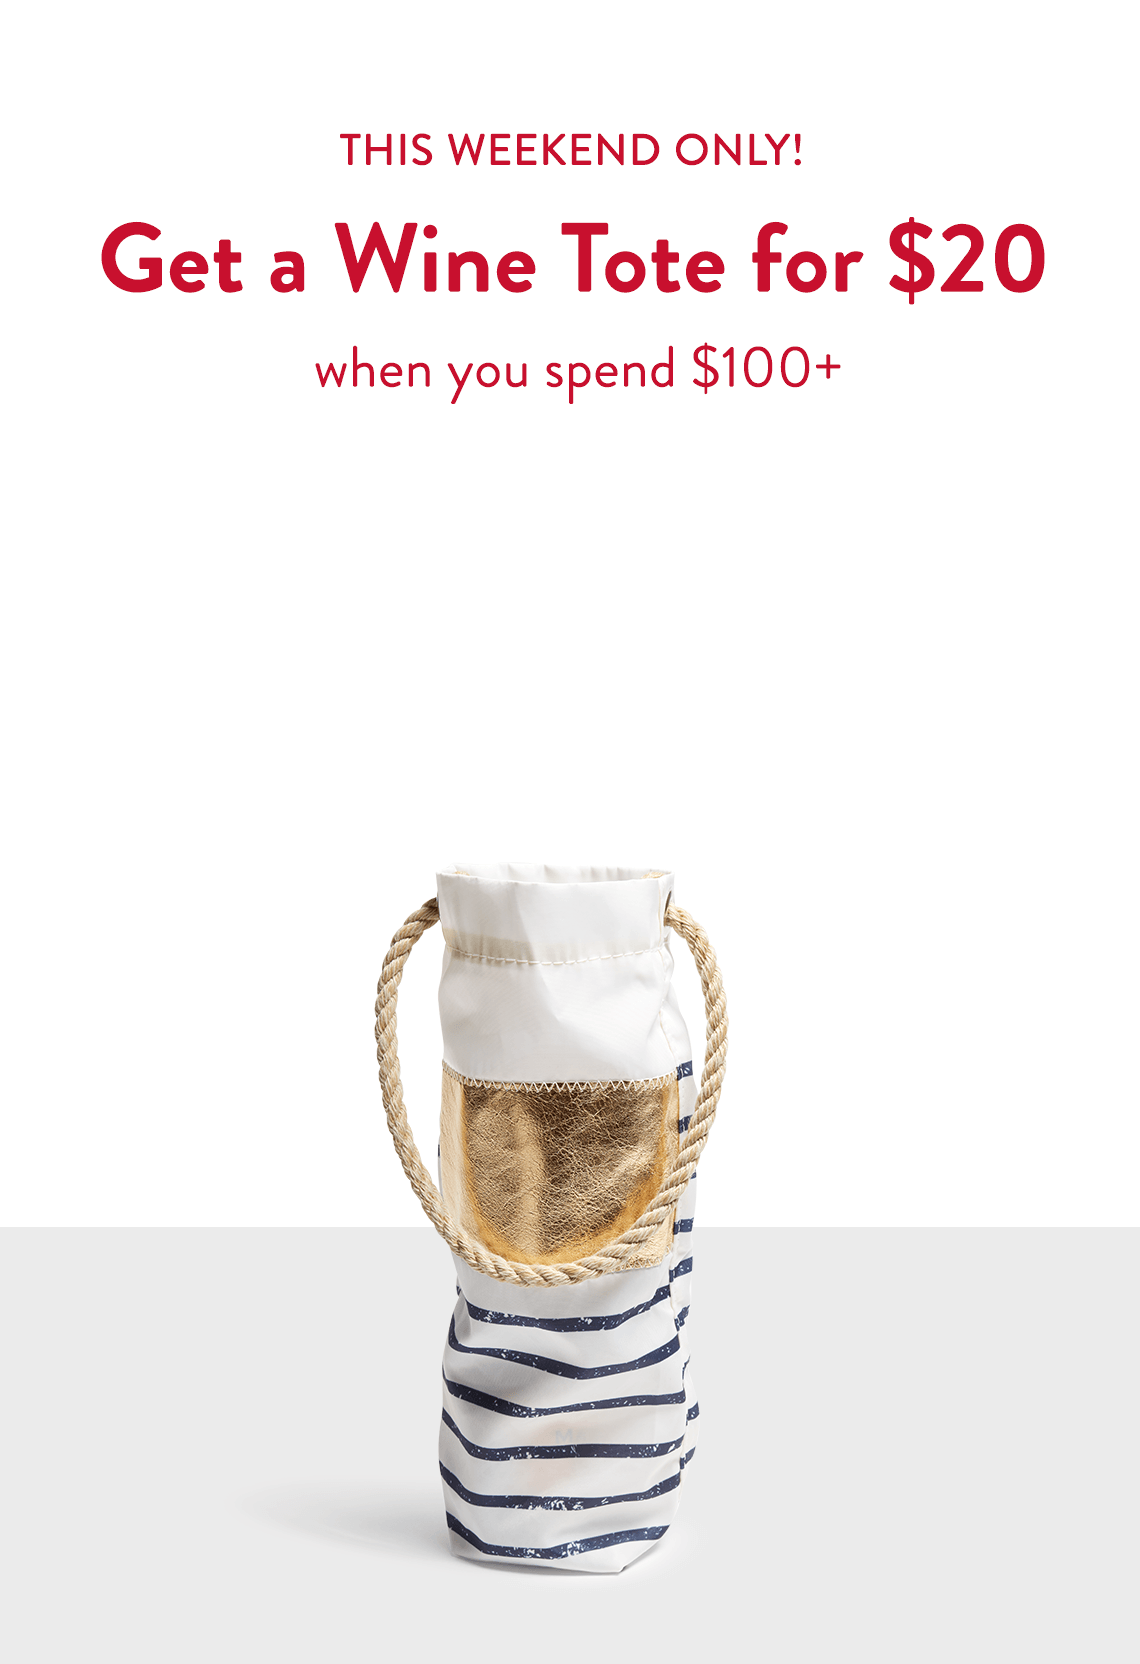 This weekend only! Get a Wine Tote for $20 When you spend $100+ valued at $40. While supplies last.